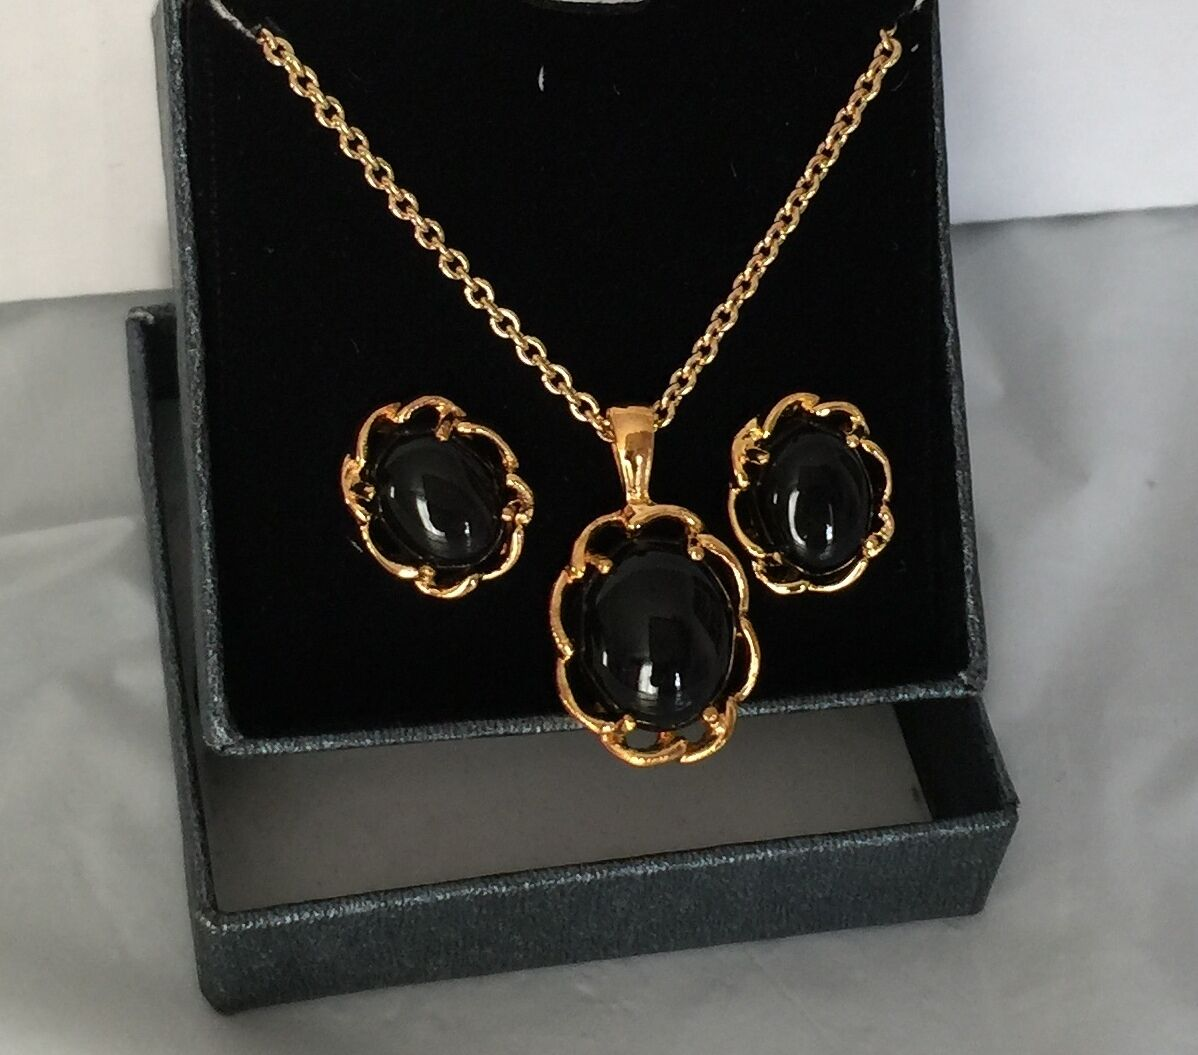 Gold Plated Silver Necklace Set 290 00: QVC Gold Plated Black Onyx Earrings And Pendant Set 14K